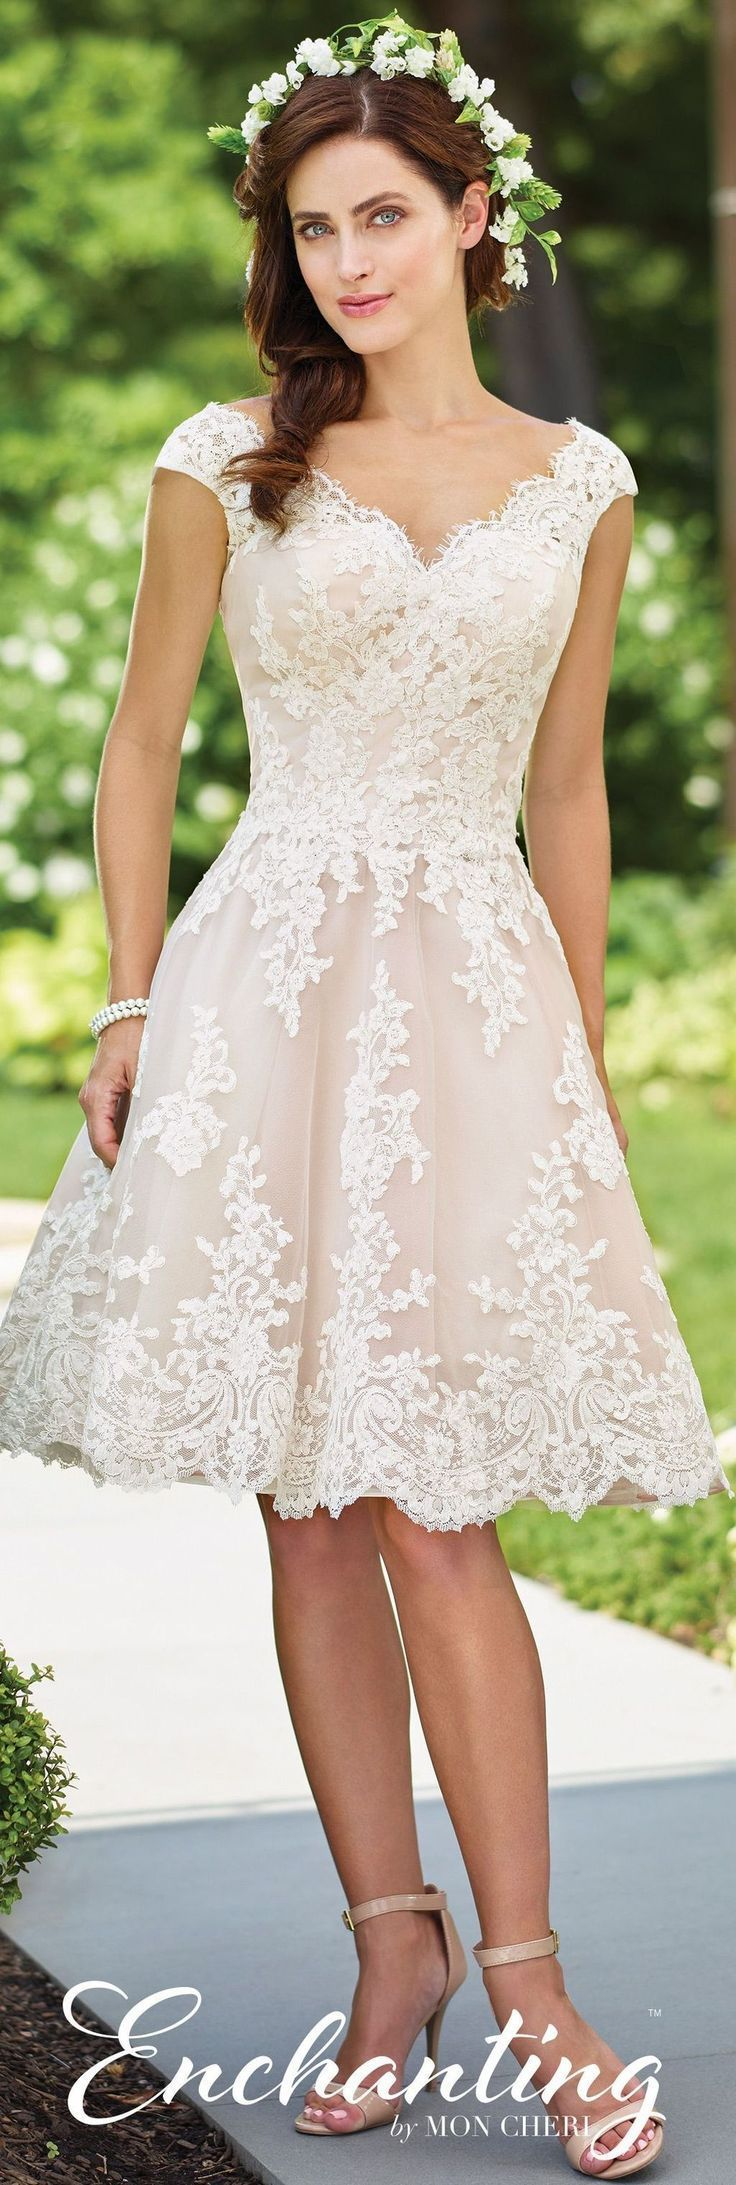 Cool 20 Cute Lace Short Bridesmaid Dresses Trends Ideas. More at